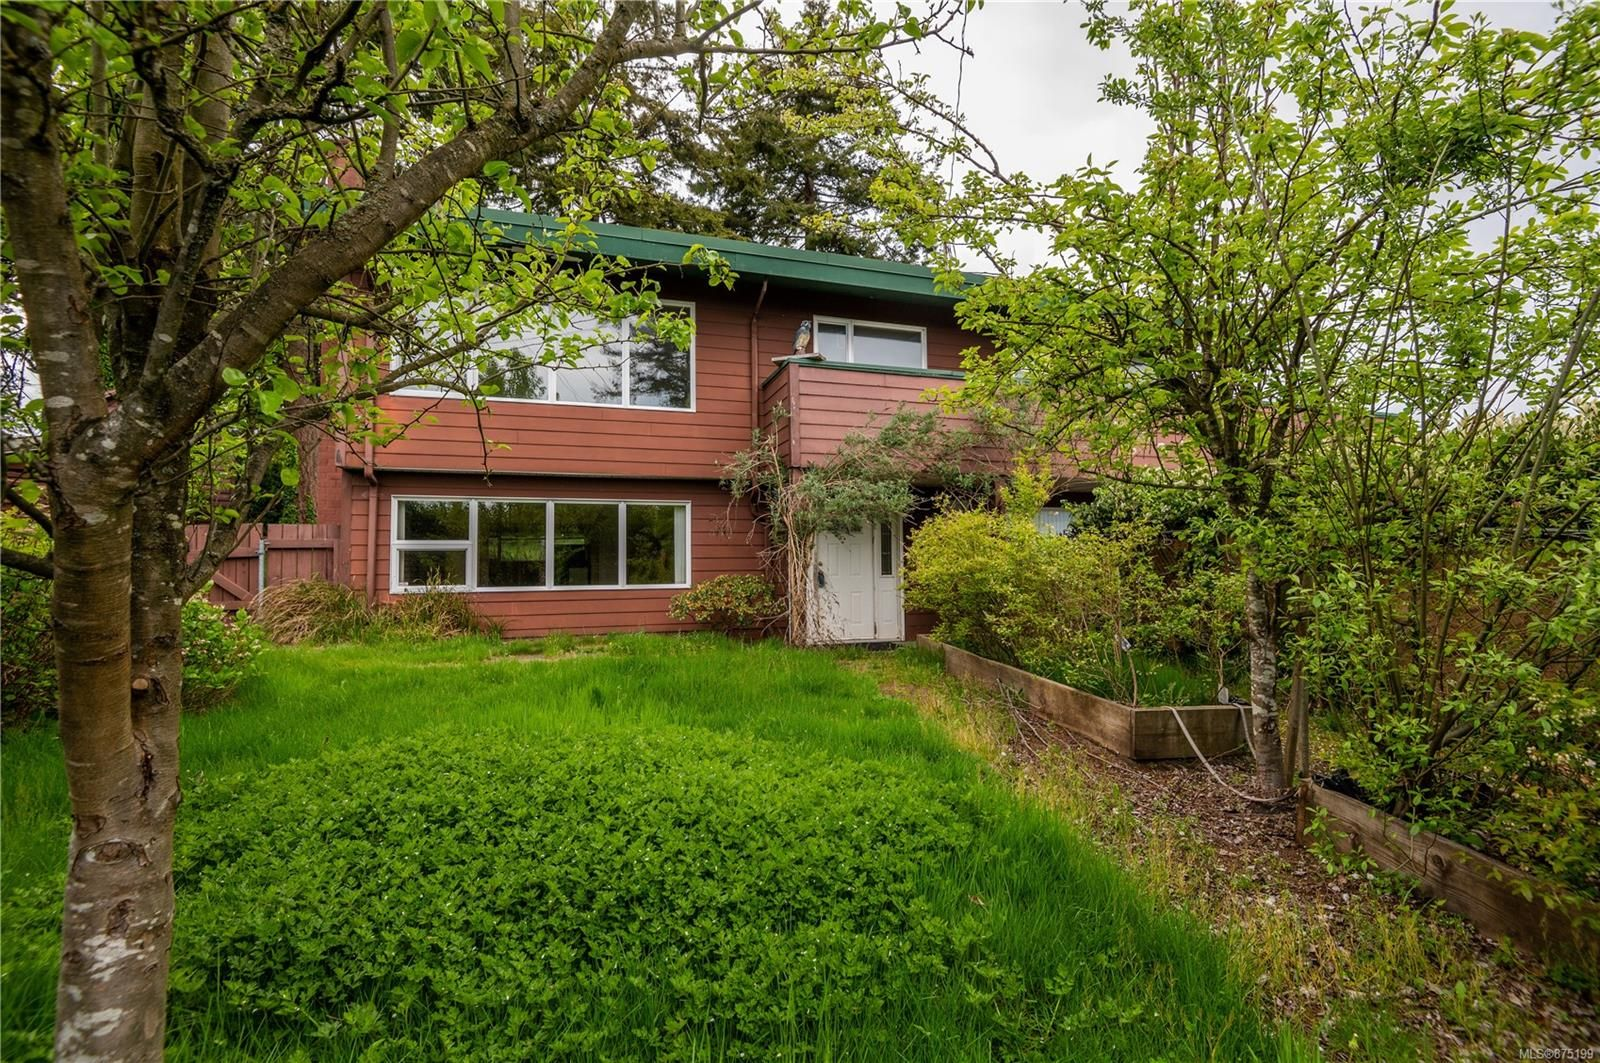 Main Photo: 201 McCarthy St in : CR Campbell River Central House for sale (Campbell River)  : MLS®# 875199